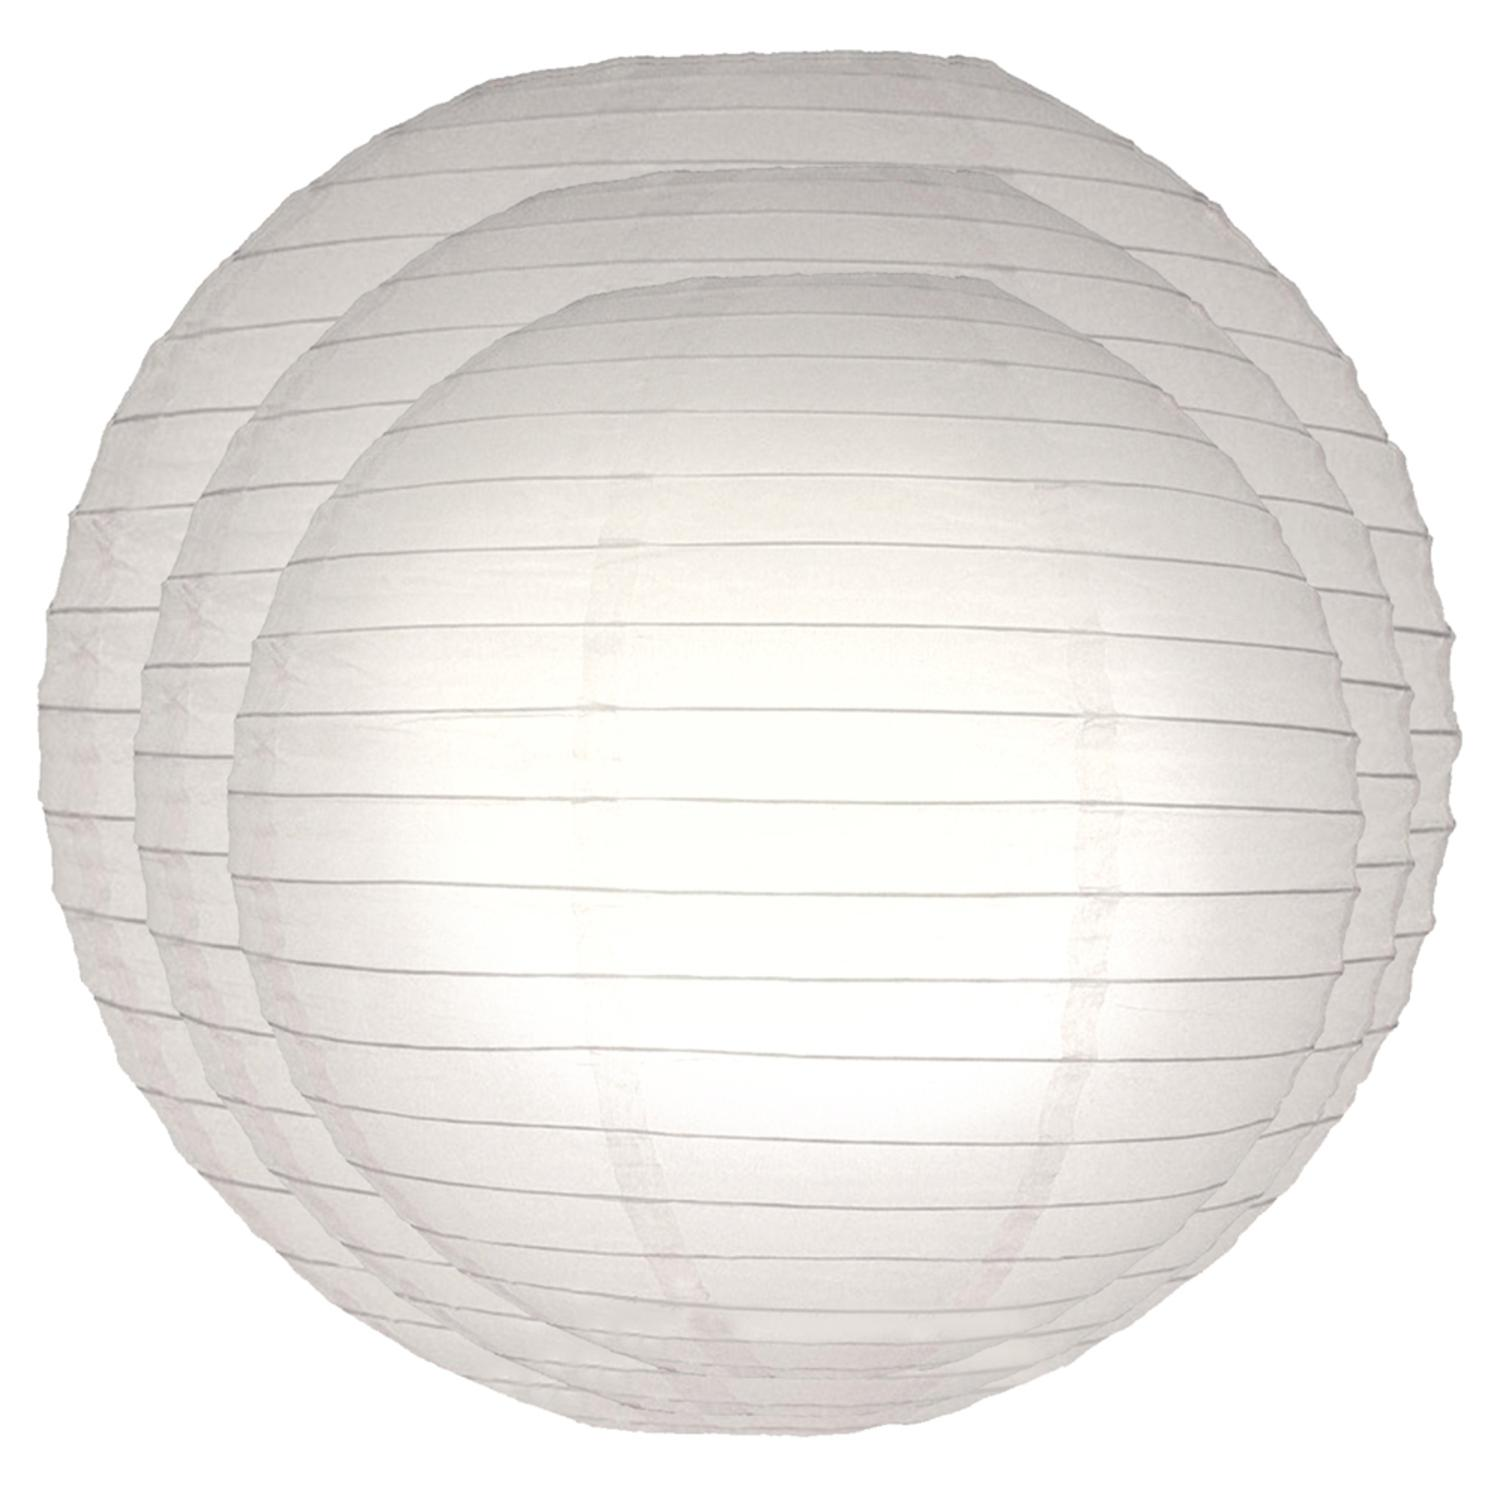 Pack of 6 Traditional Bright White Garden Patio Round Chinese Paper Lanterns